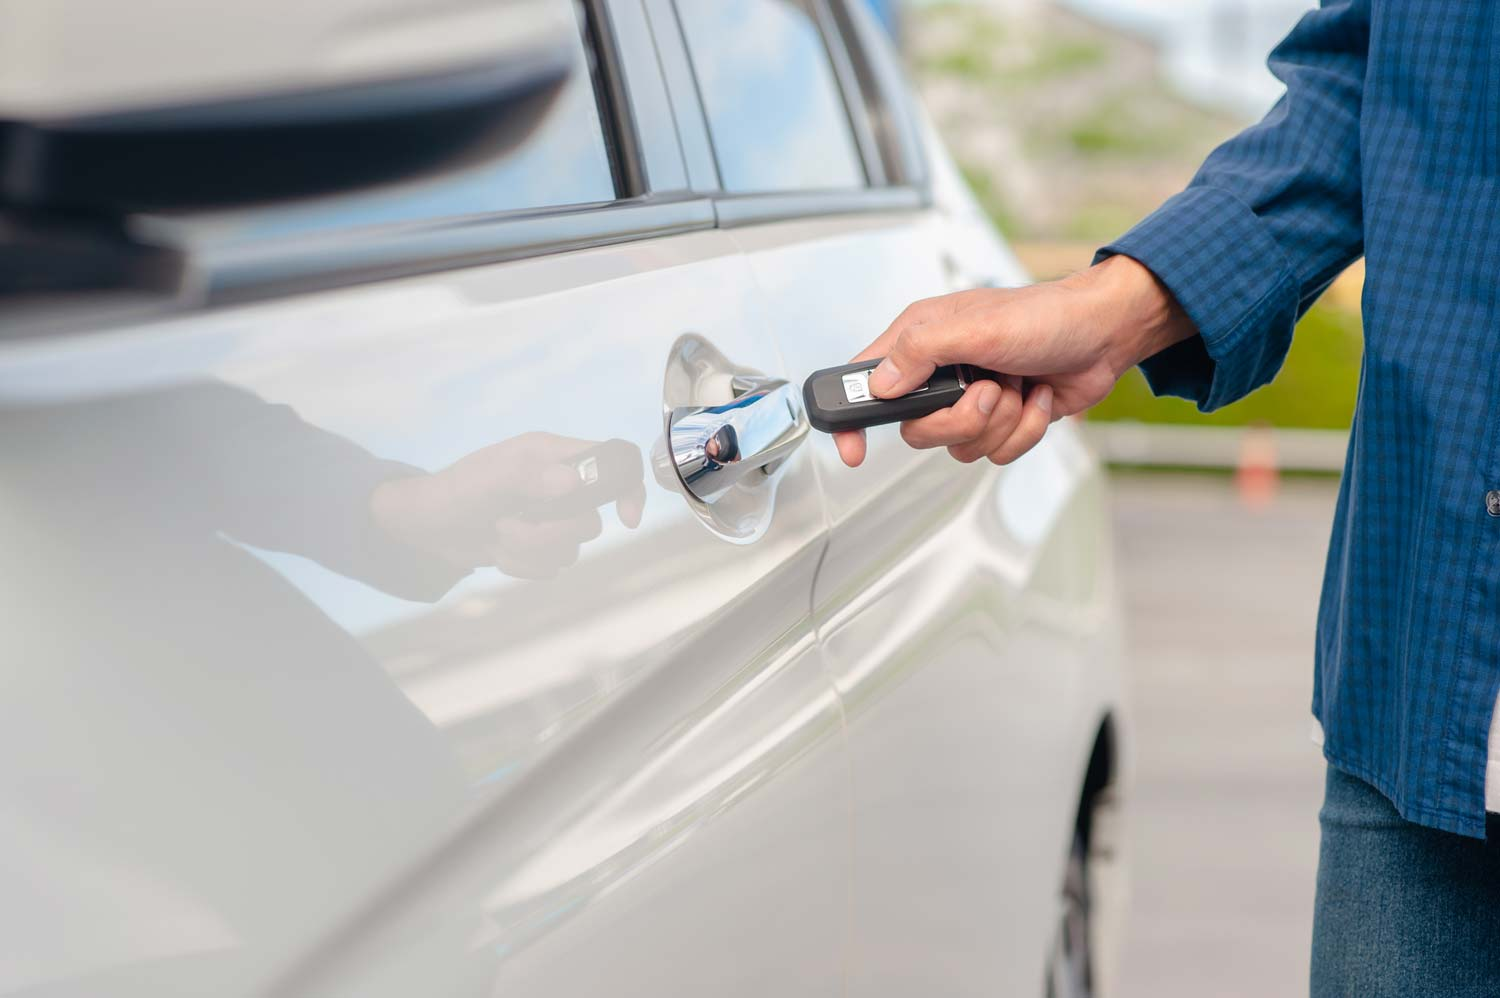 How Do Thieves Steal Keyless Cars